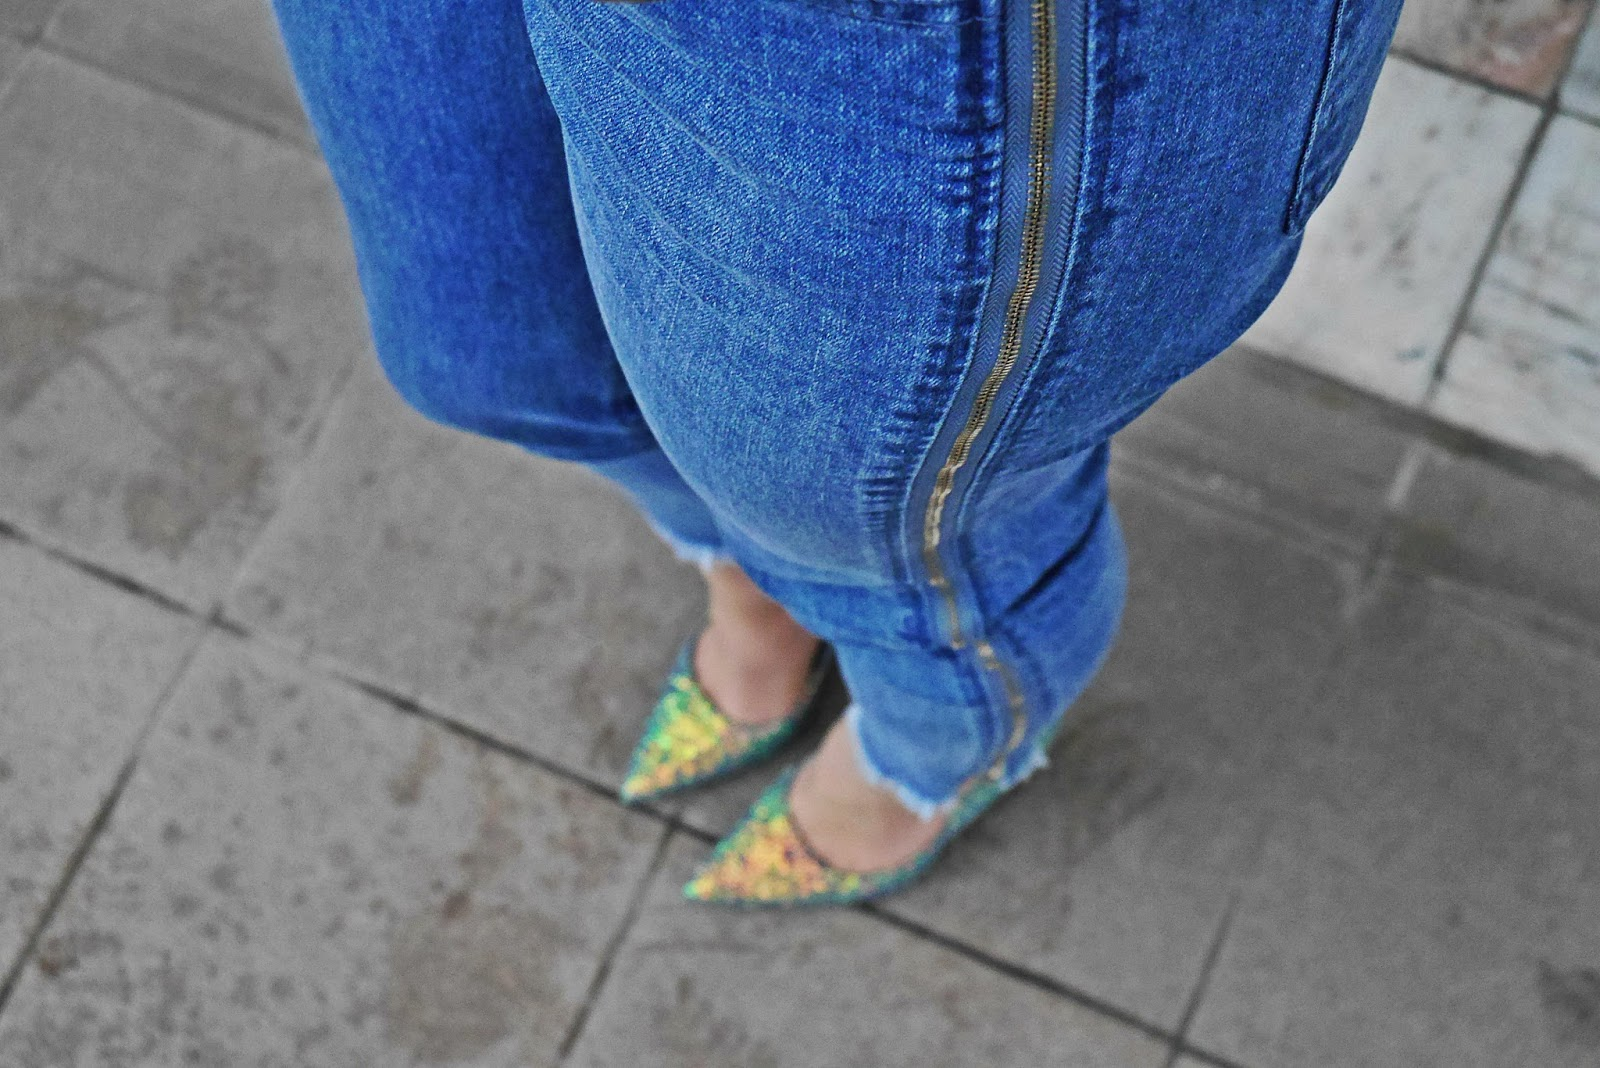 7_blue_biker_jacket_denim_pants_glitter_heels_shoes_karyn_blog_modowy_070118